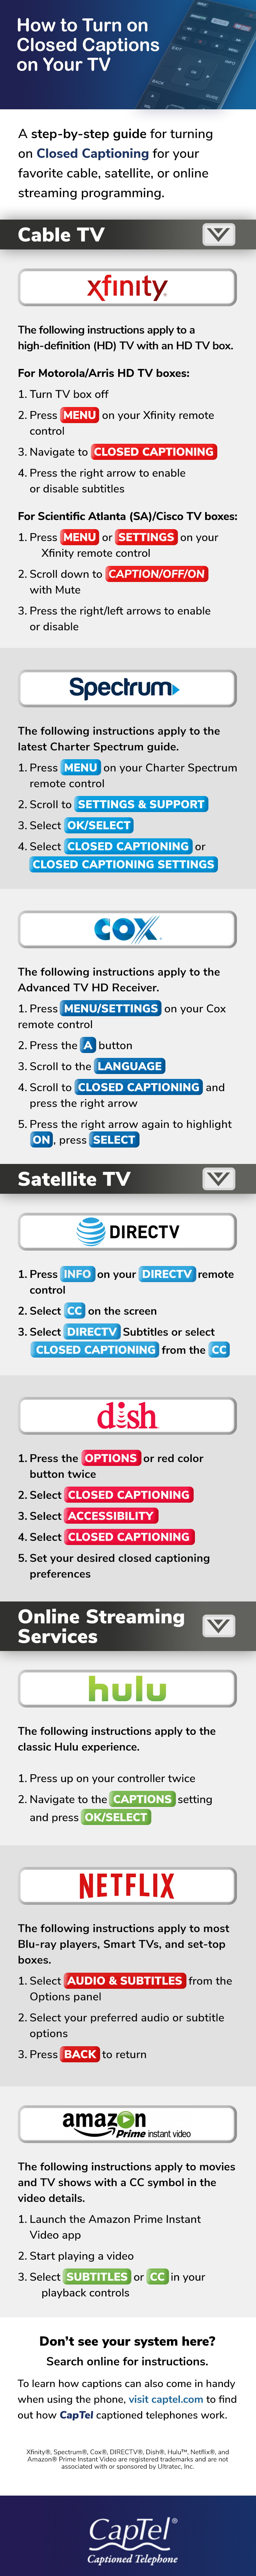 Learn how to turn on subtitles to enjoy your favorite programming.